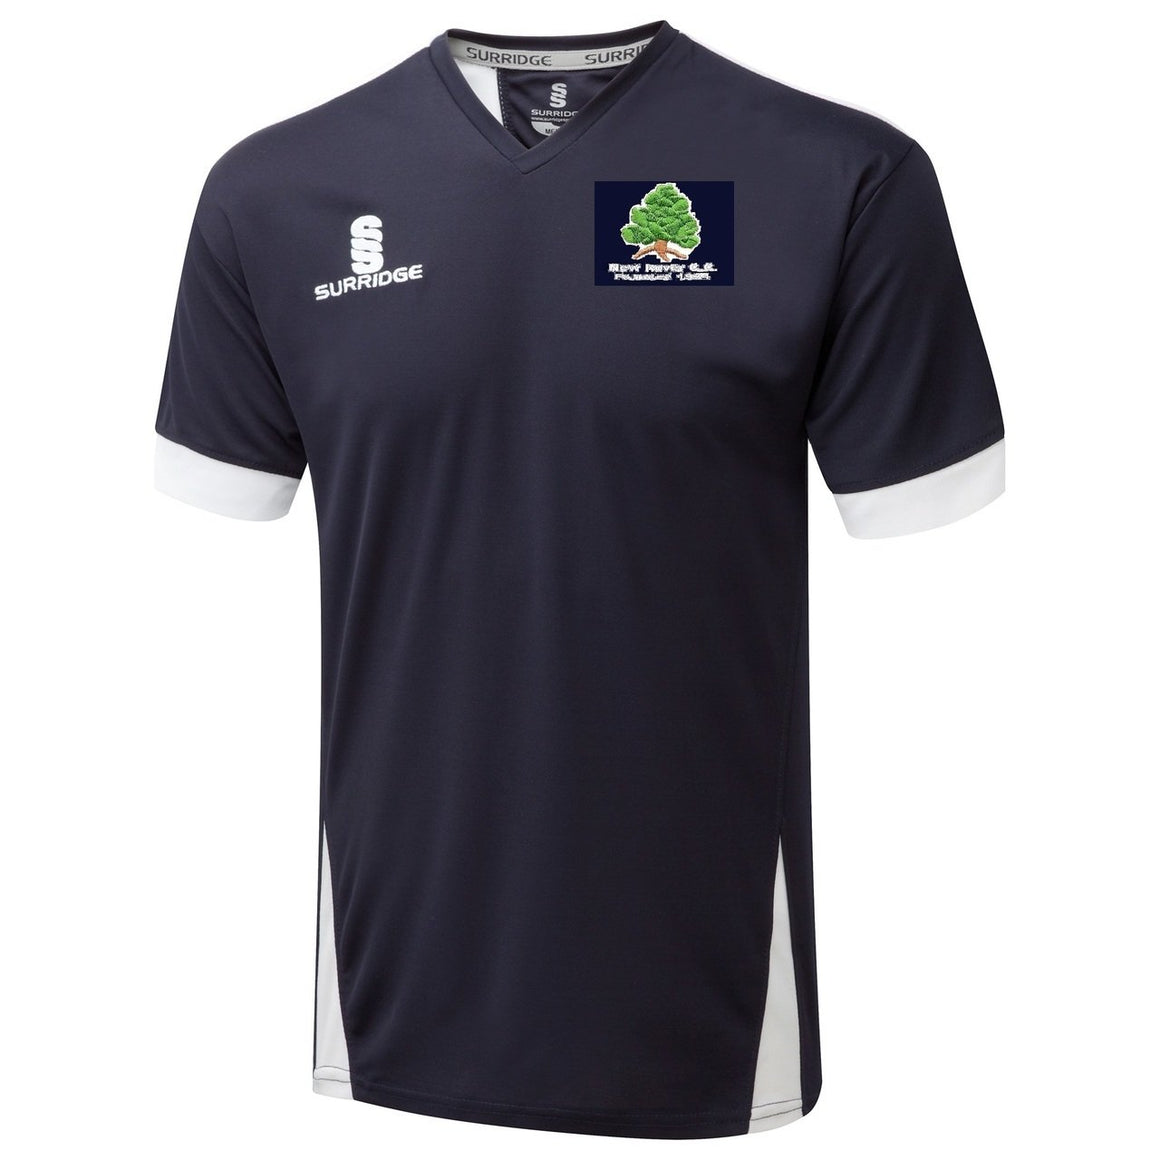 New Rover CC Blade Training Shirt